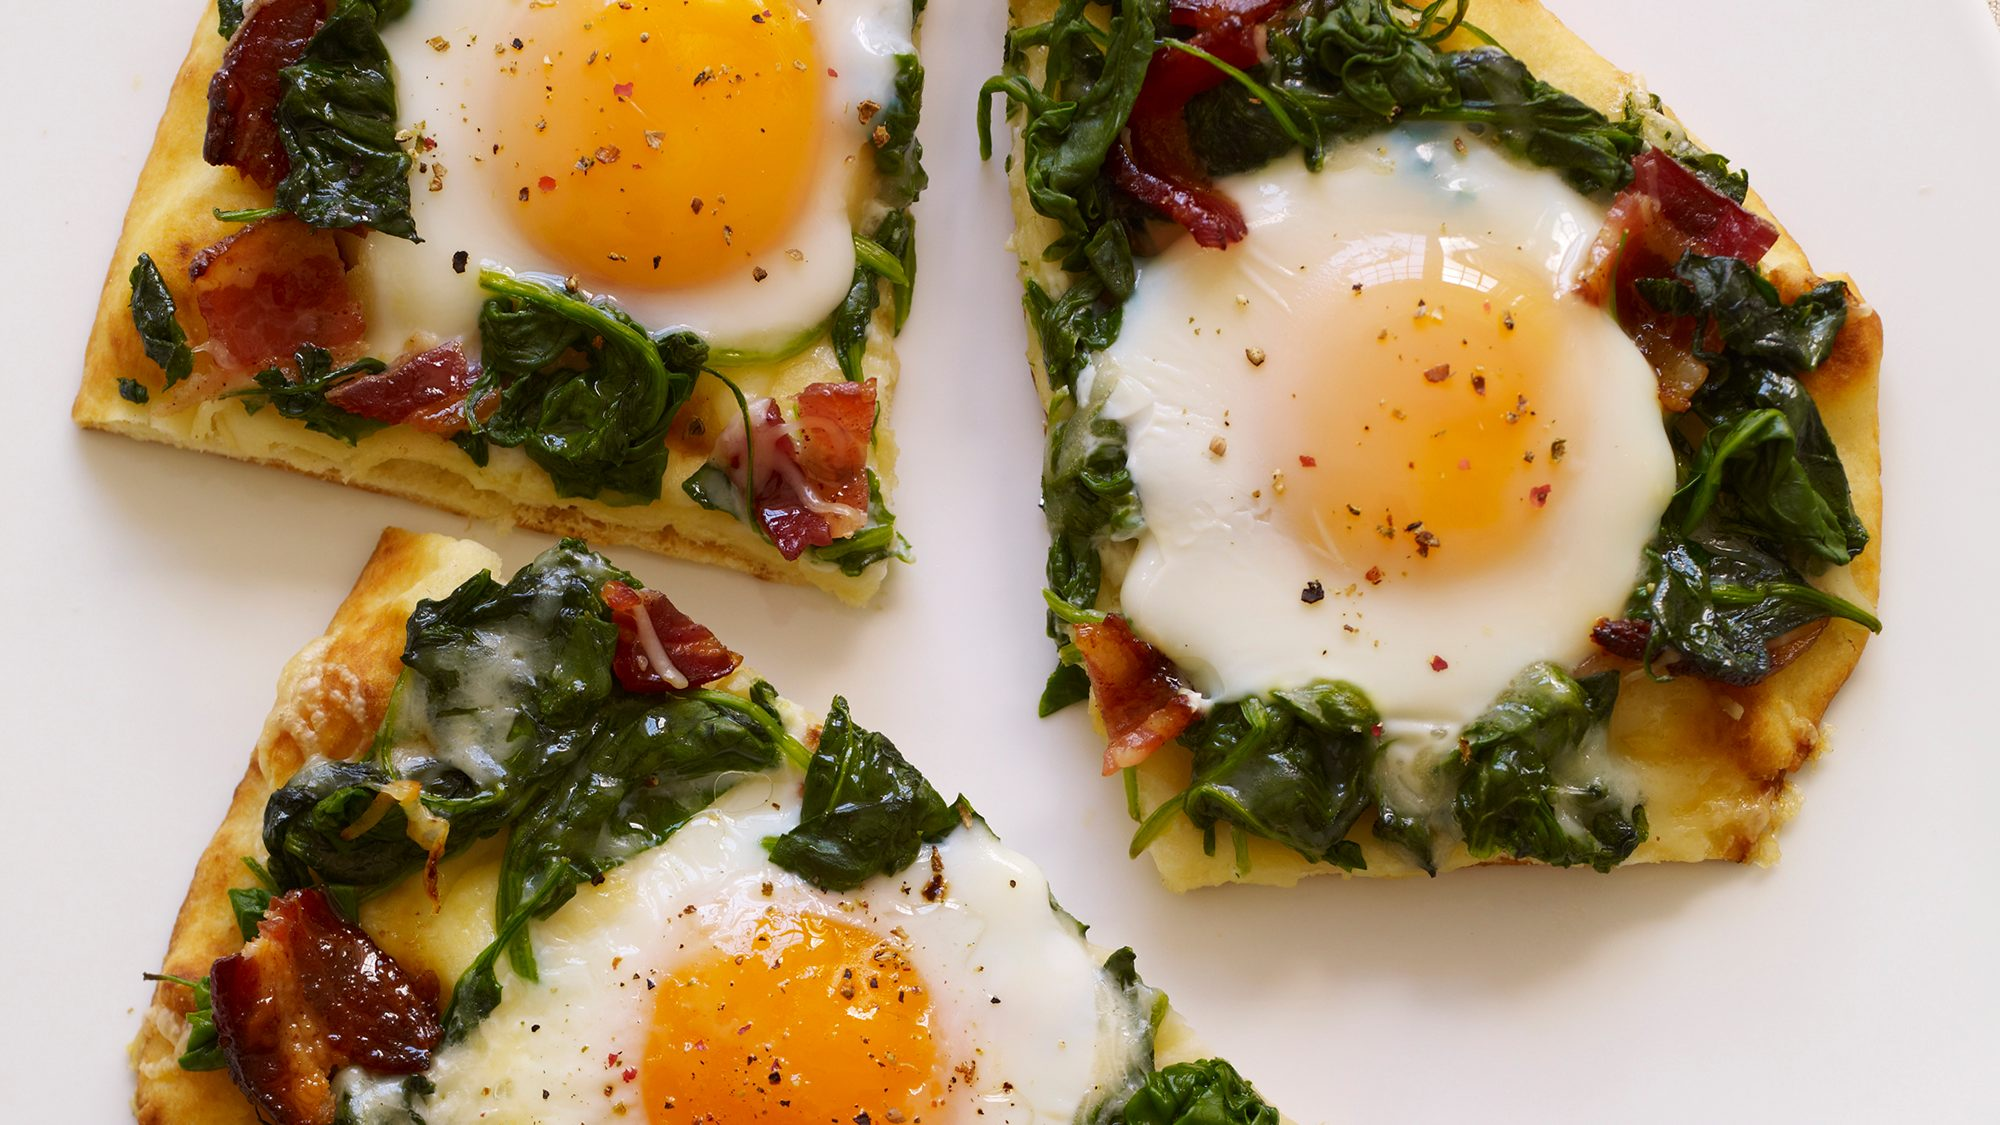 applewood-bacon-and-eggs-breakfast-flatbread.jpg